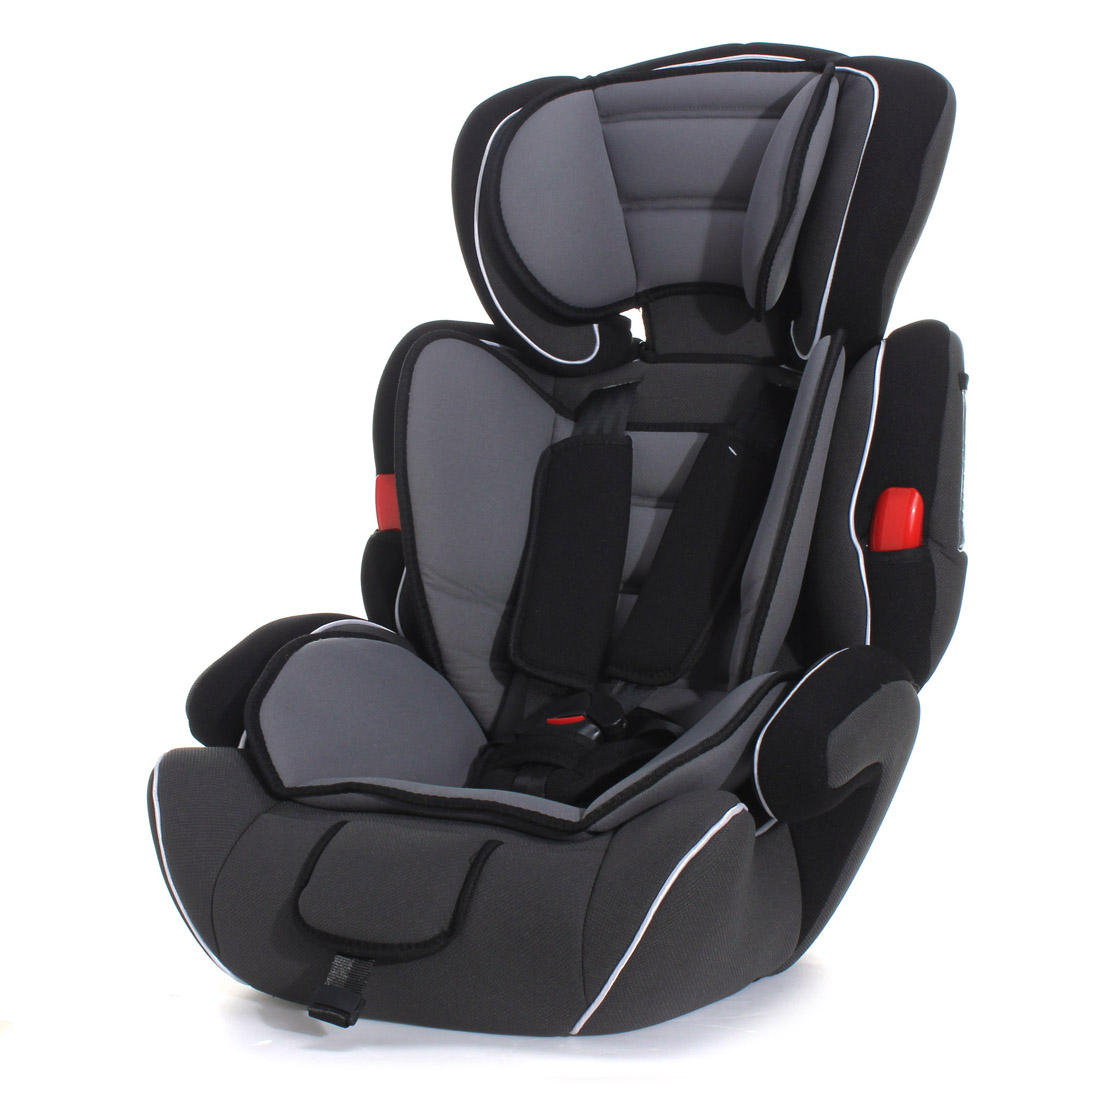 Black Convertible Baby Kid Children Car Safety Seat Booster Group 1 2 3 9 36 Kg Series A Cod